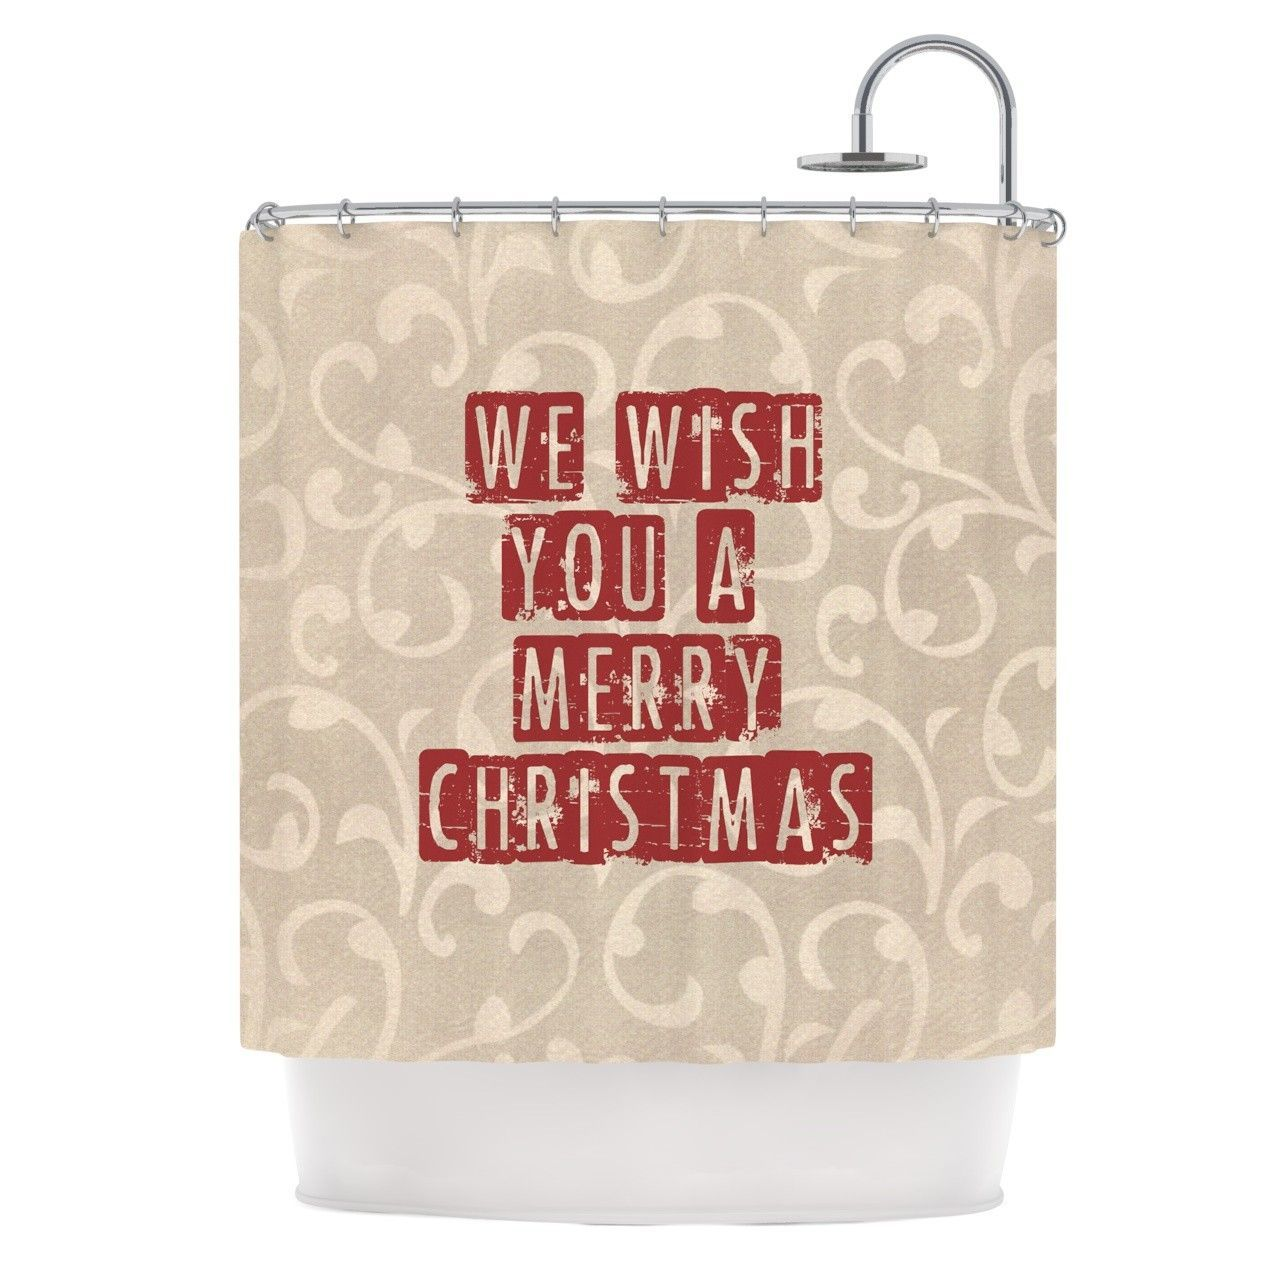 We Wish You a Merry Christmas Shower Curtain | Shower Curtains ...